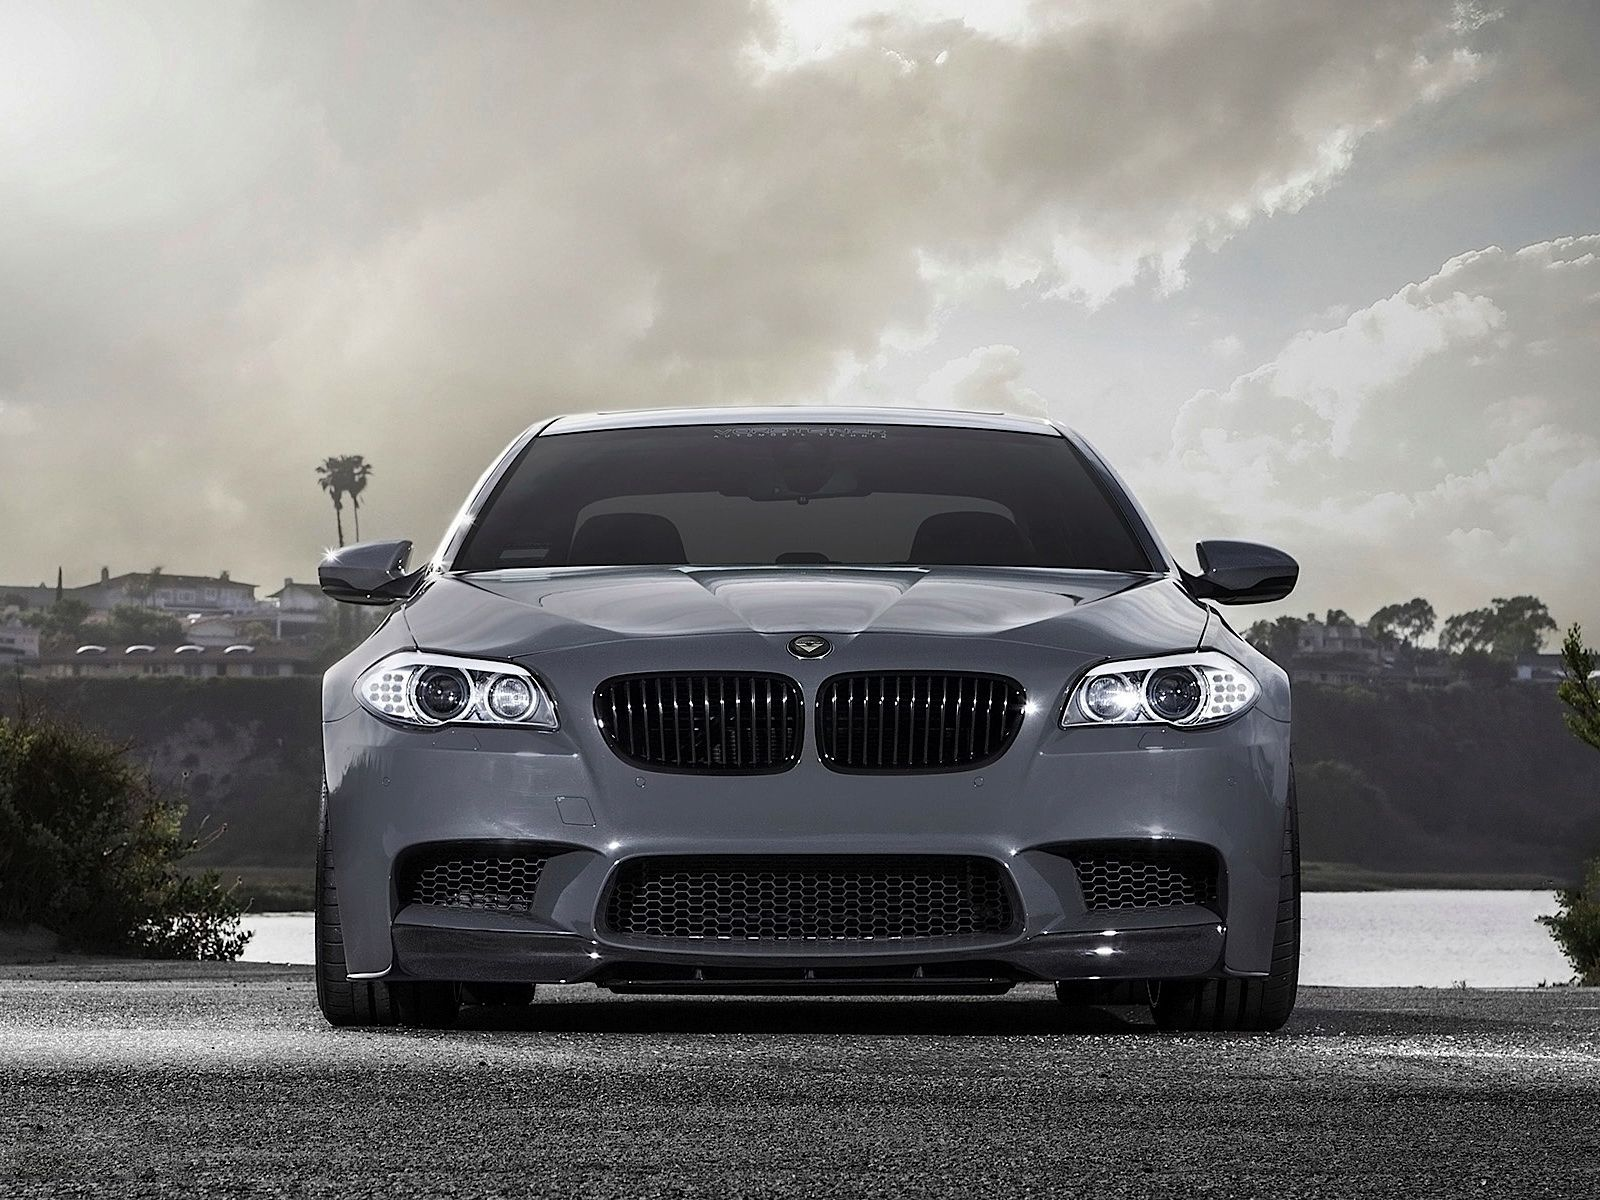 Bmw M5 F10 Wallpapers Top Free Bmw M5 F10 Backgrounds Wallpaperaccess